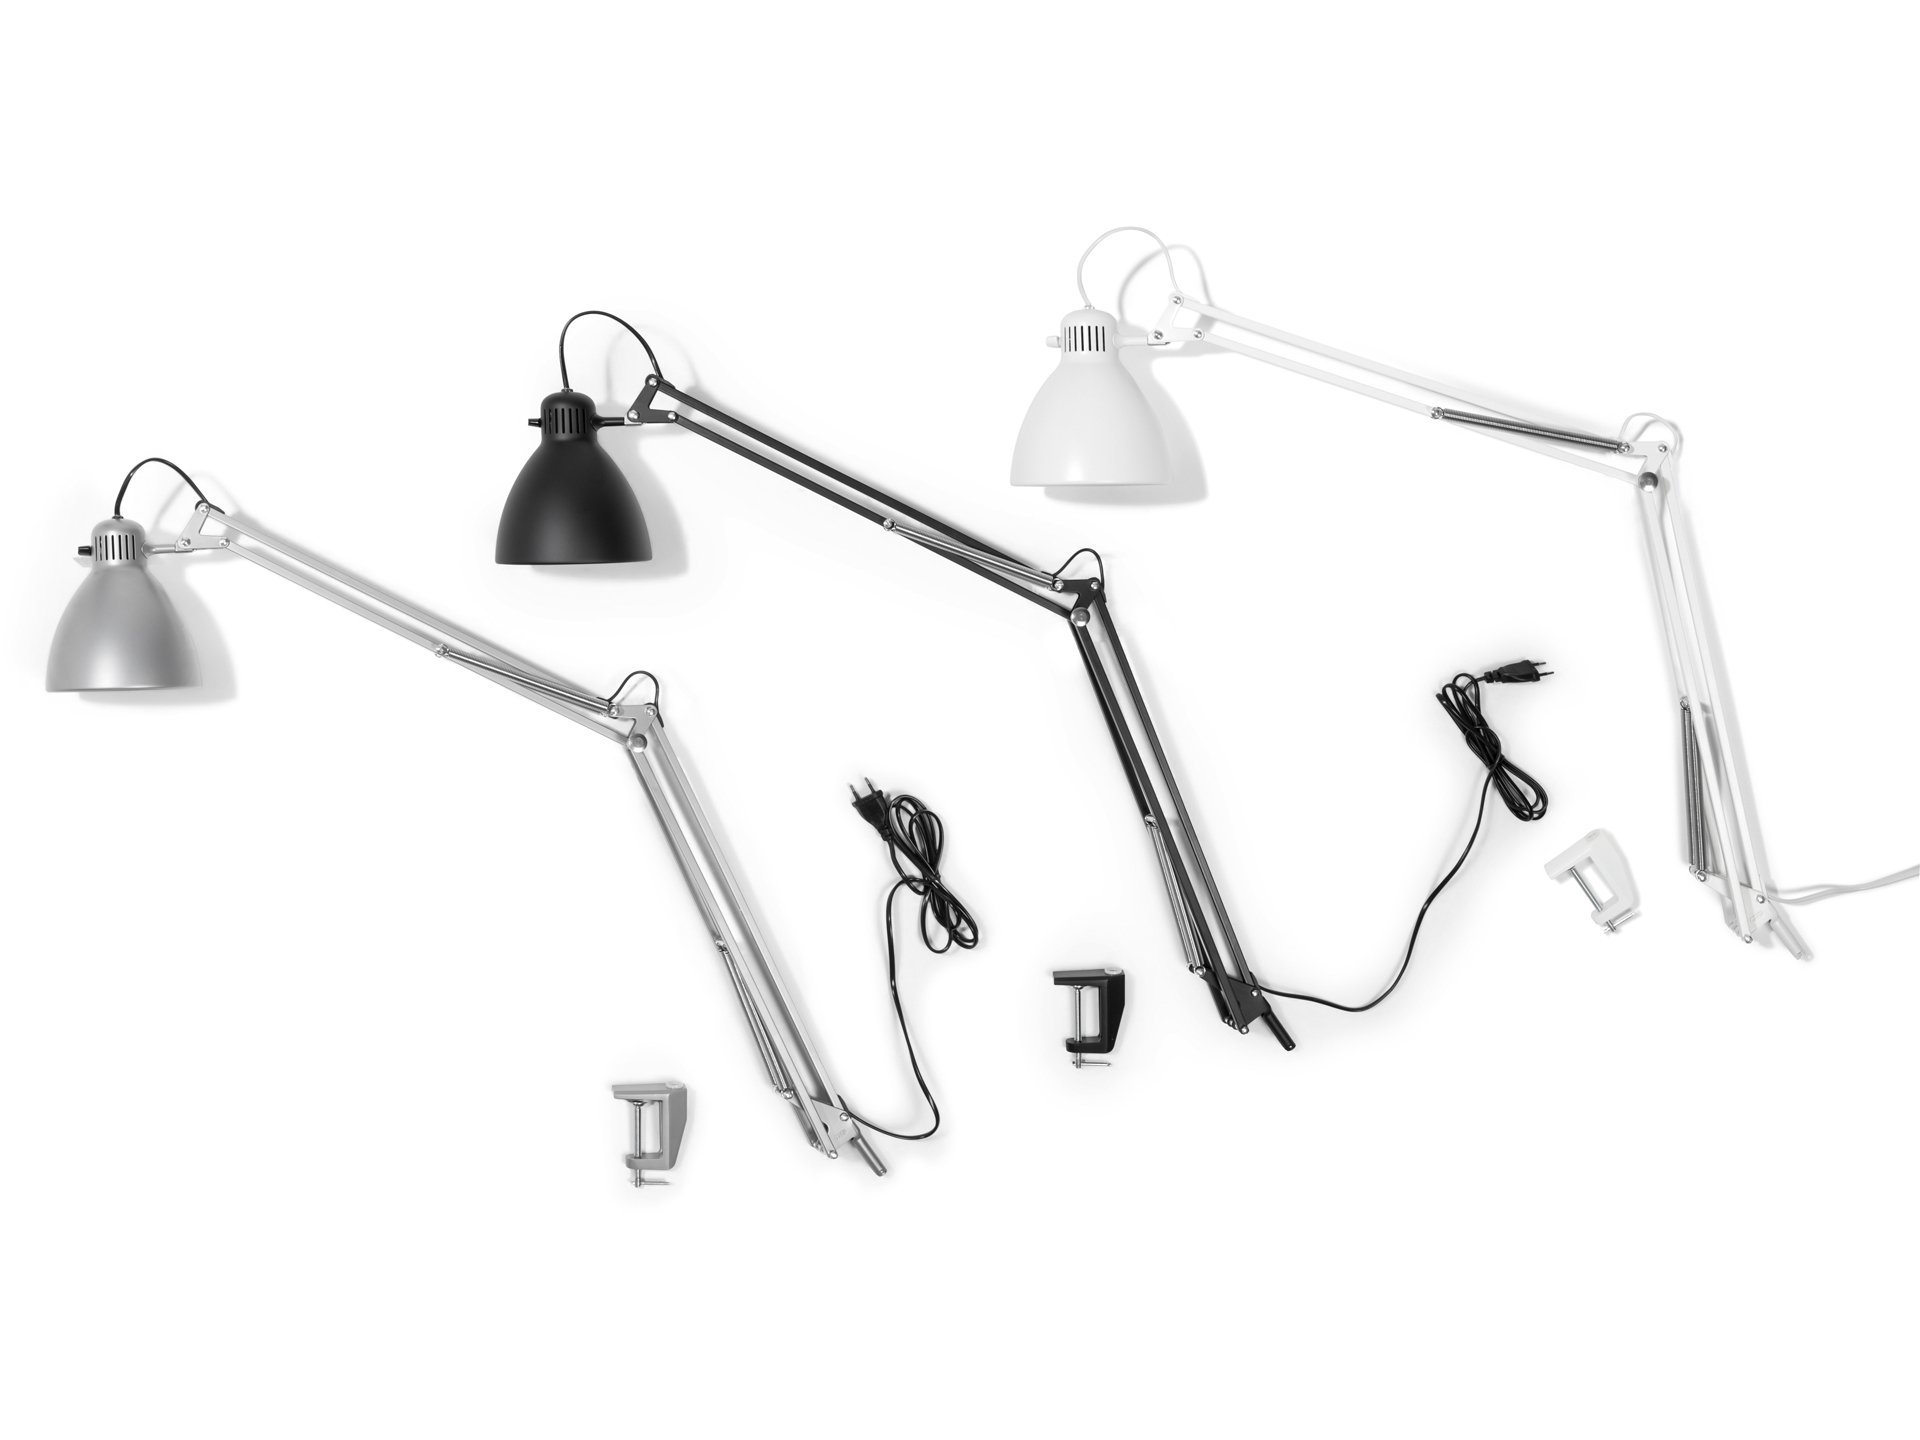 buy luxo l 1 desk lamp online at modulor online shop. Black Bedroom Furniture Sets. Home Design Ideas